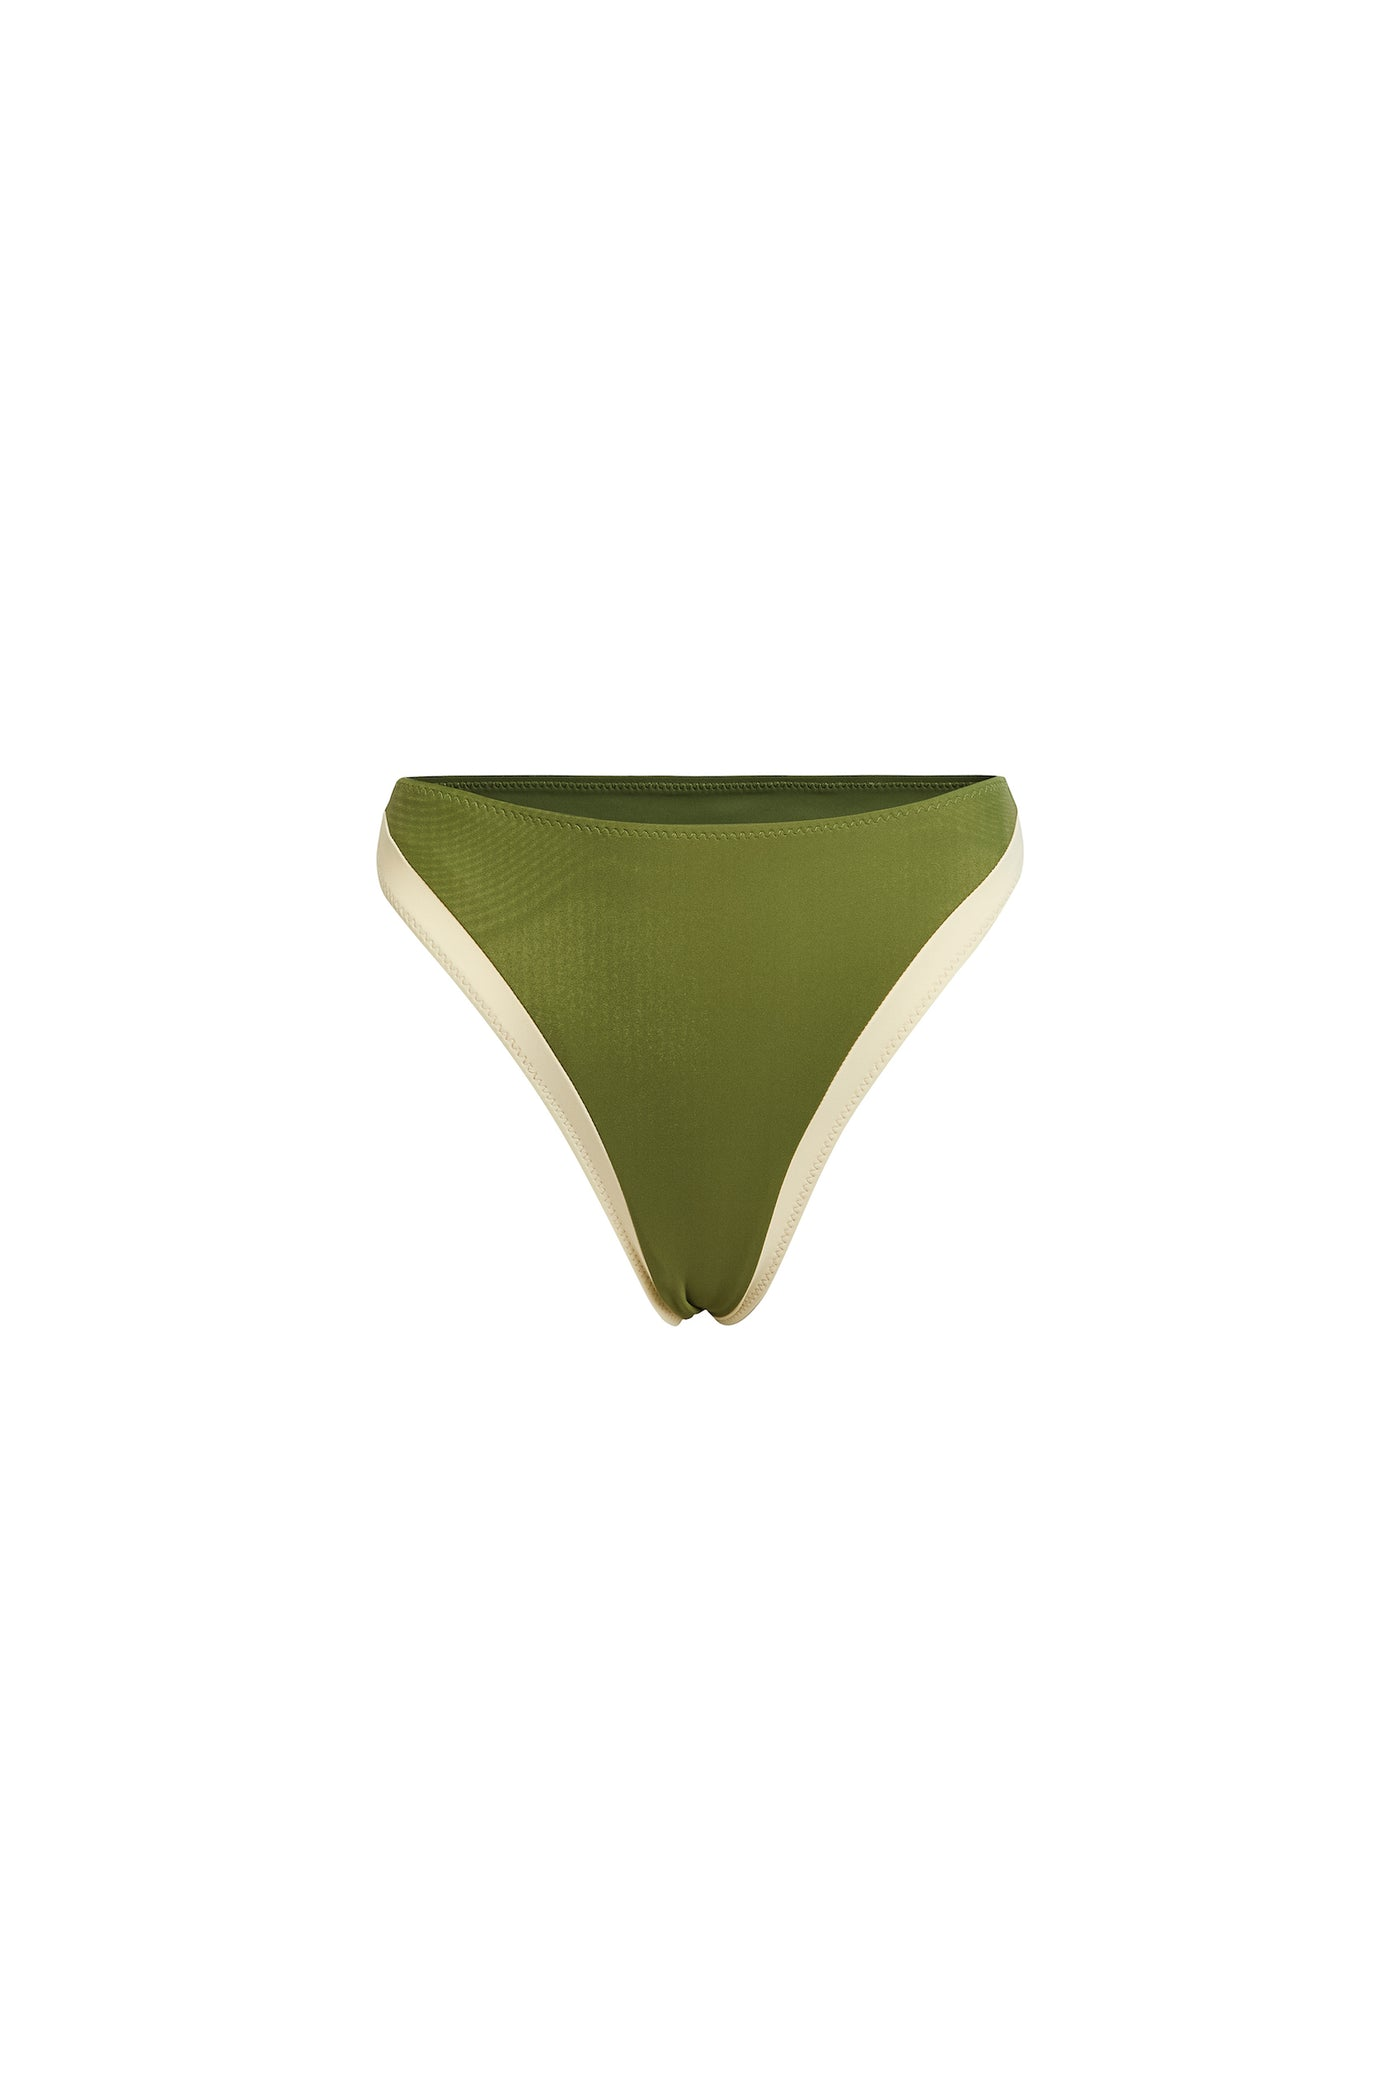 The Divine High Rise Bottom (Cream/Olive)